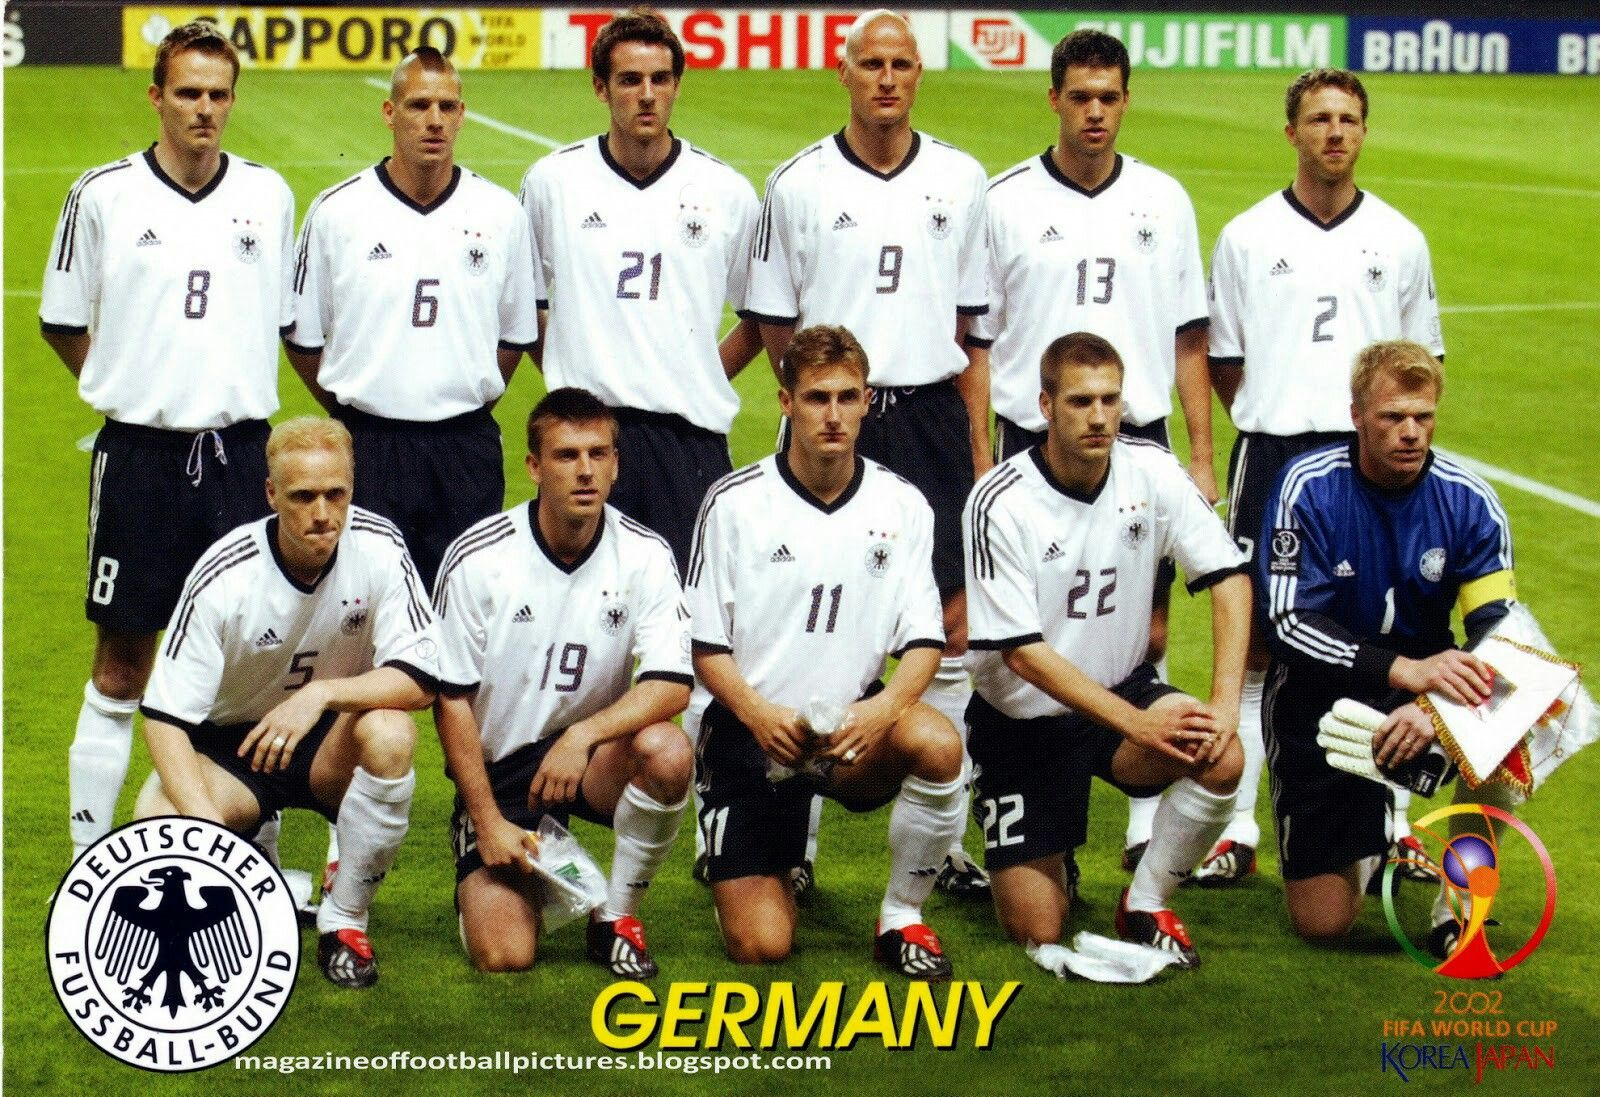 Germany Team Group For The 2002 World Cup Finals Germany Team Football Team Pictures Germany